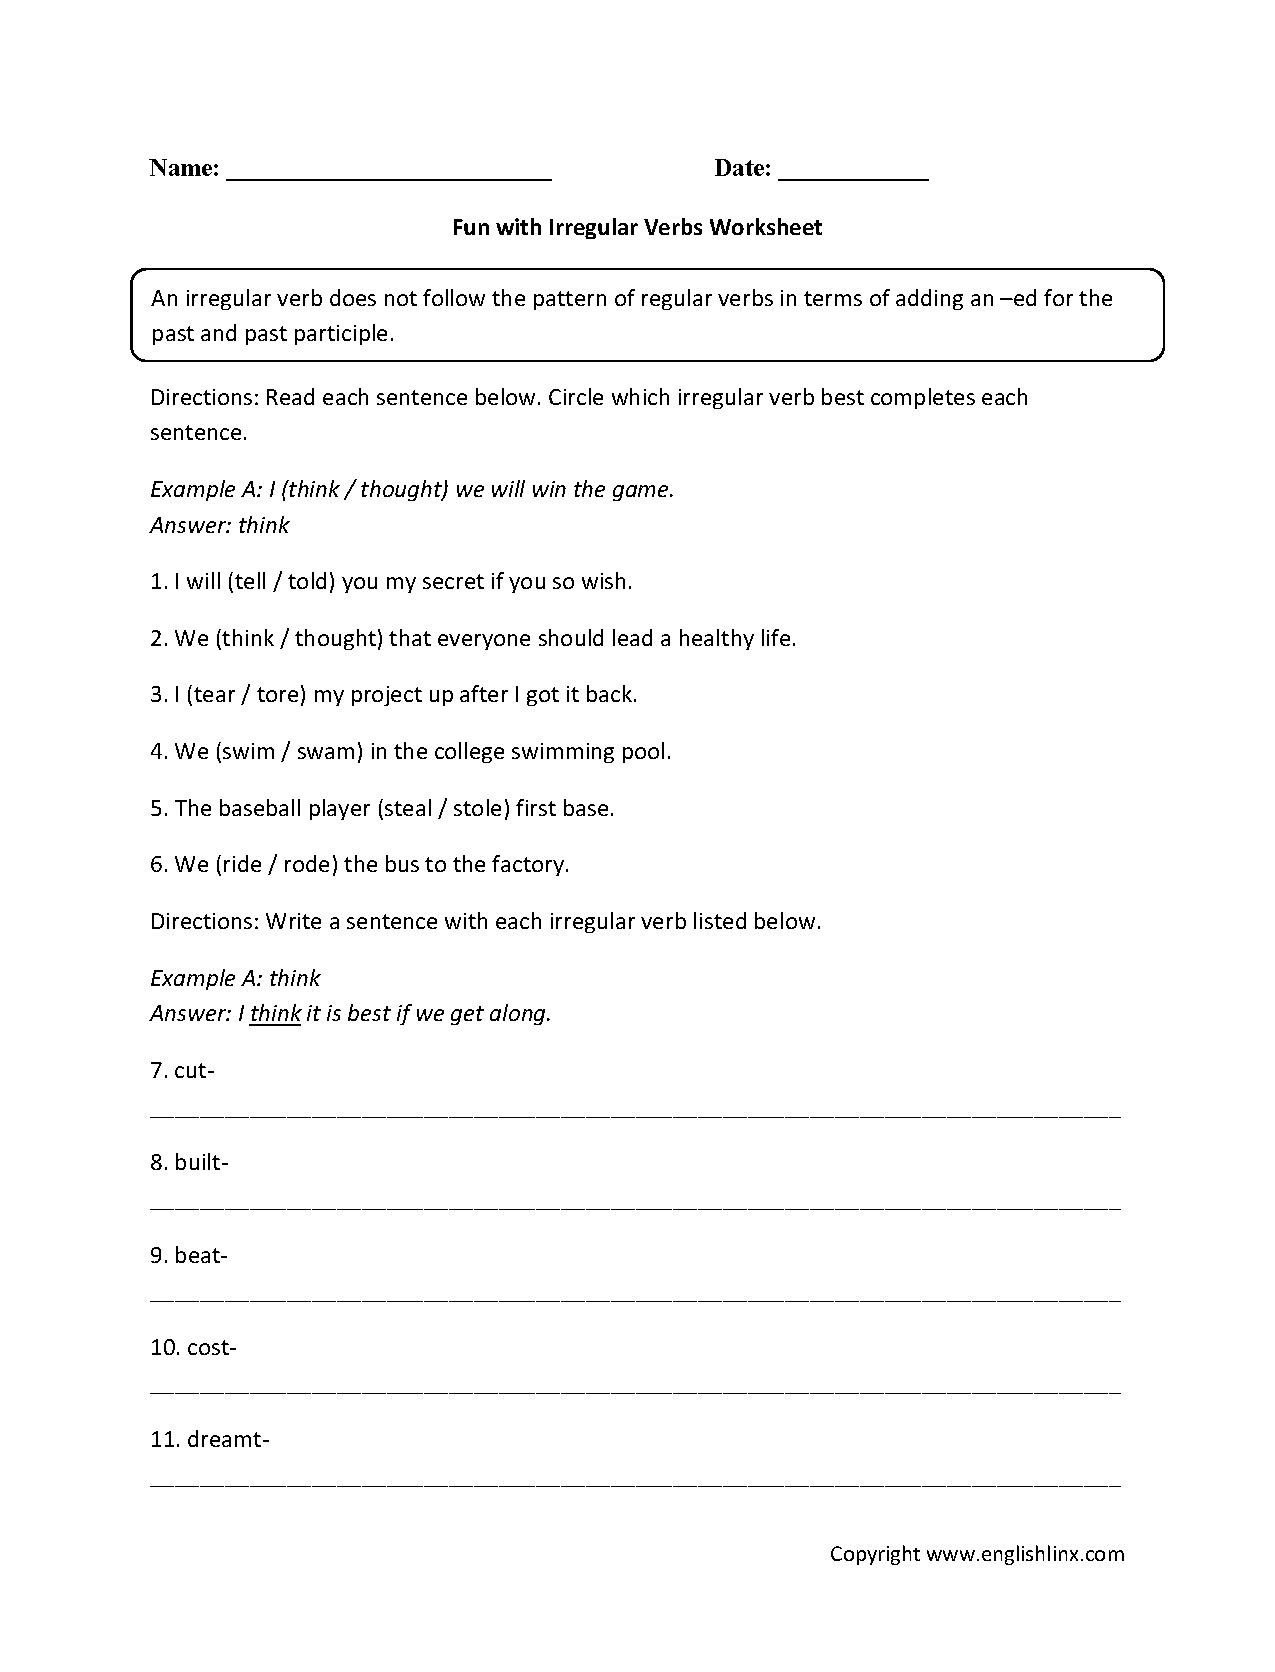 Fun With Irregular Verbs Worksheets